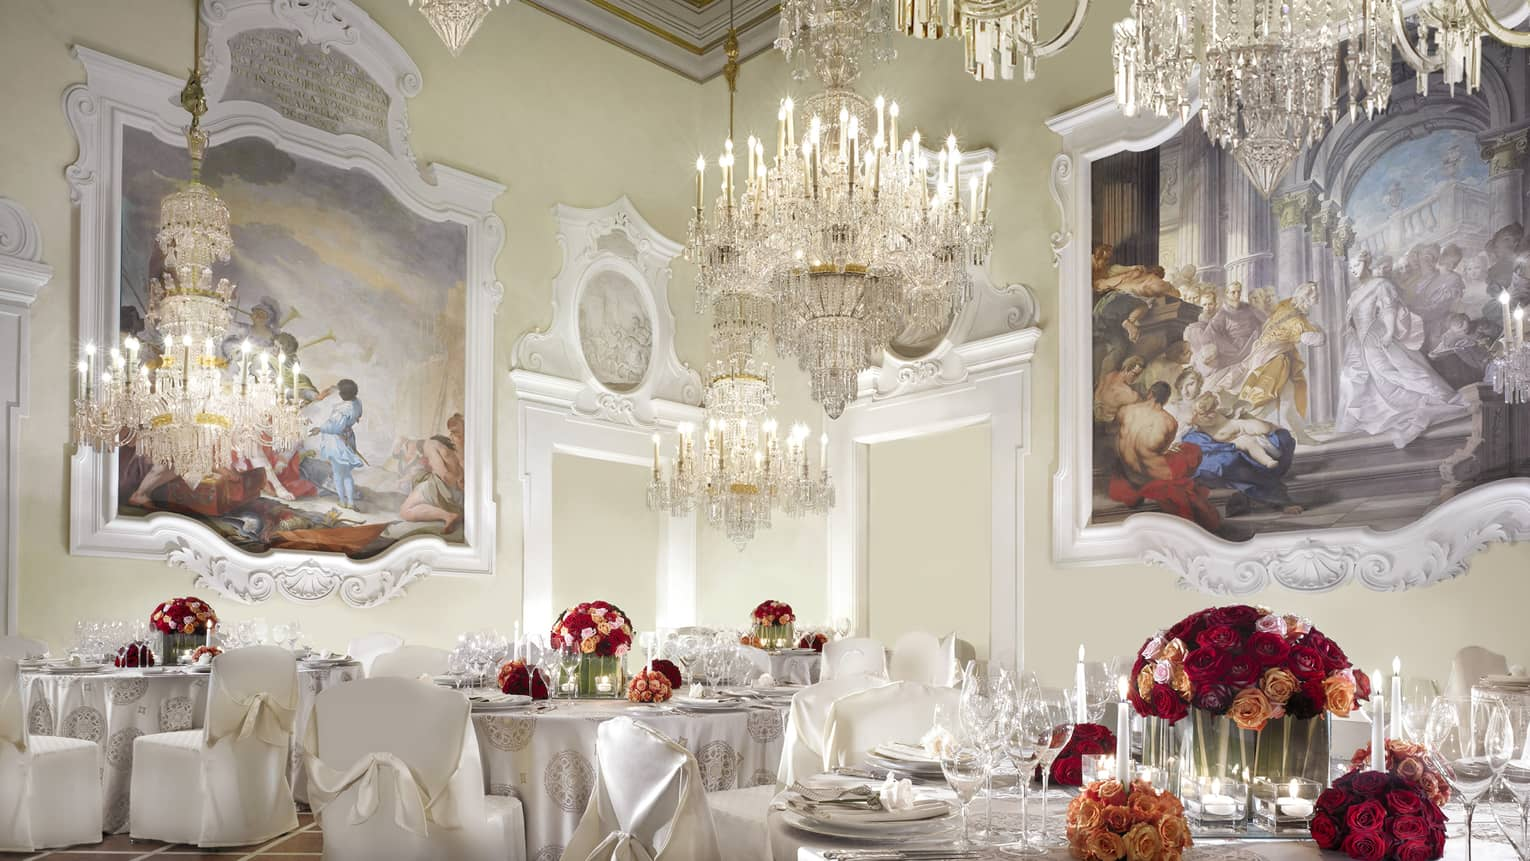 Gherardesca ballroom with large crystal chandeliers, paintings over elegant banquet tables